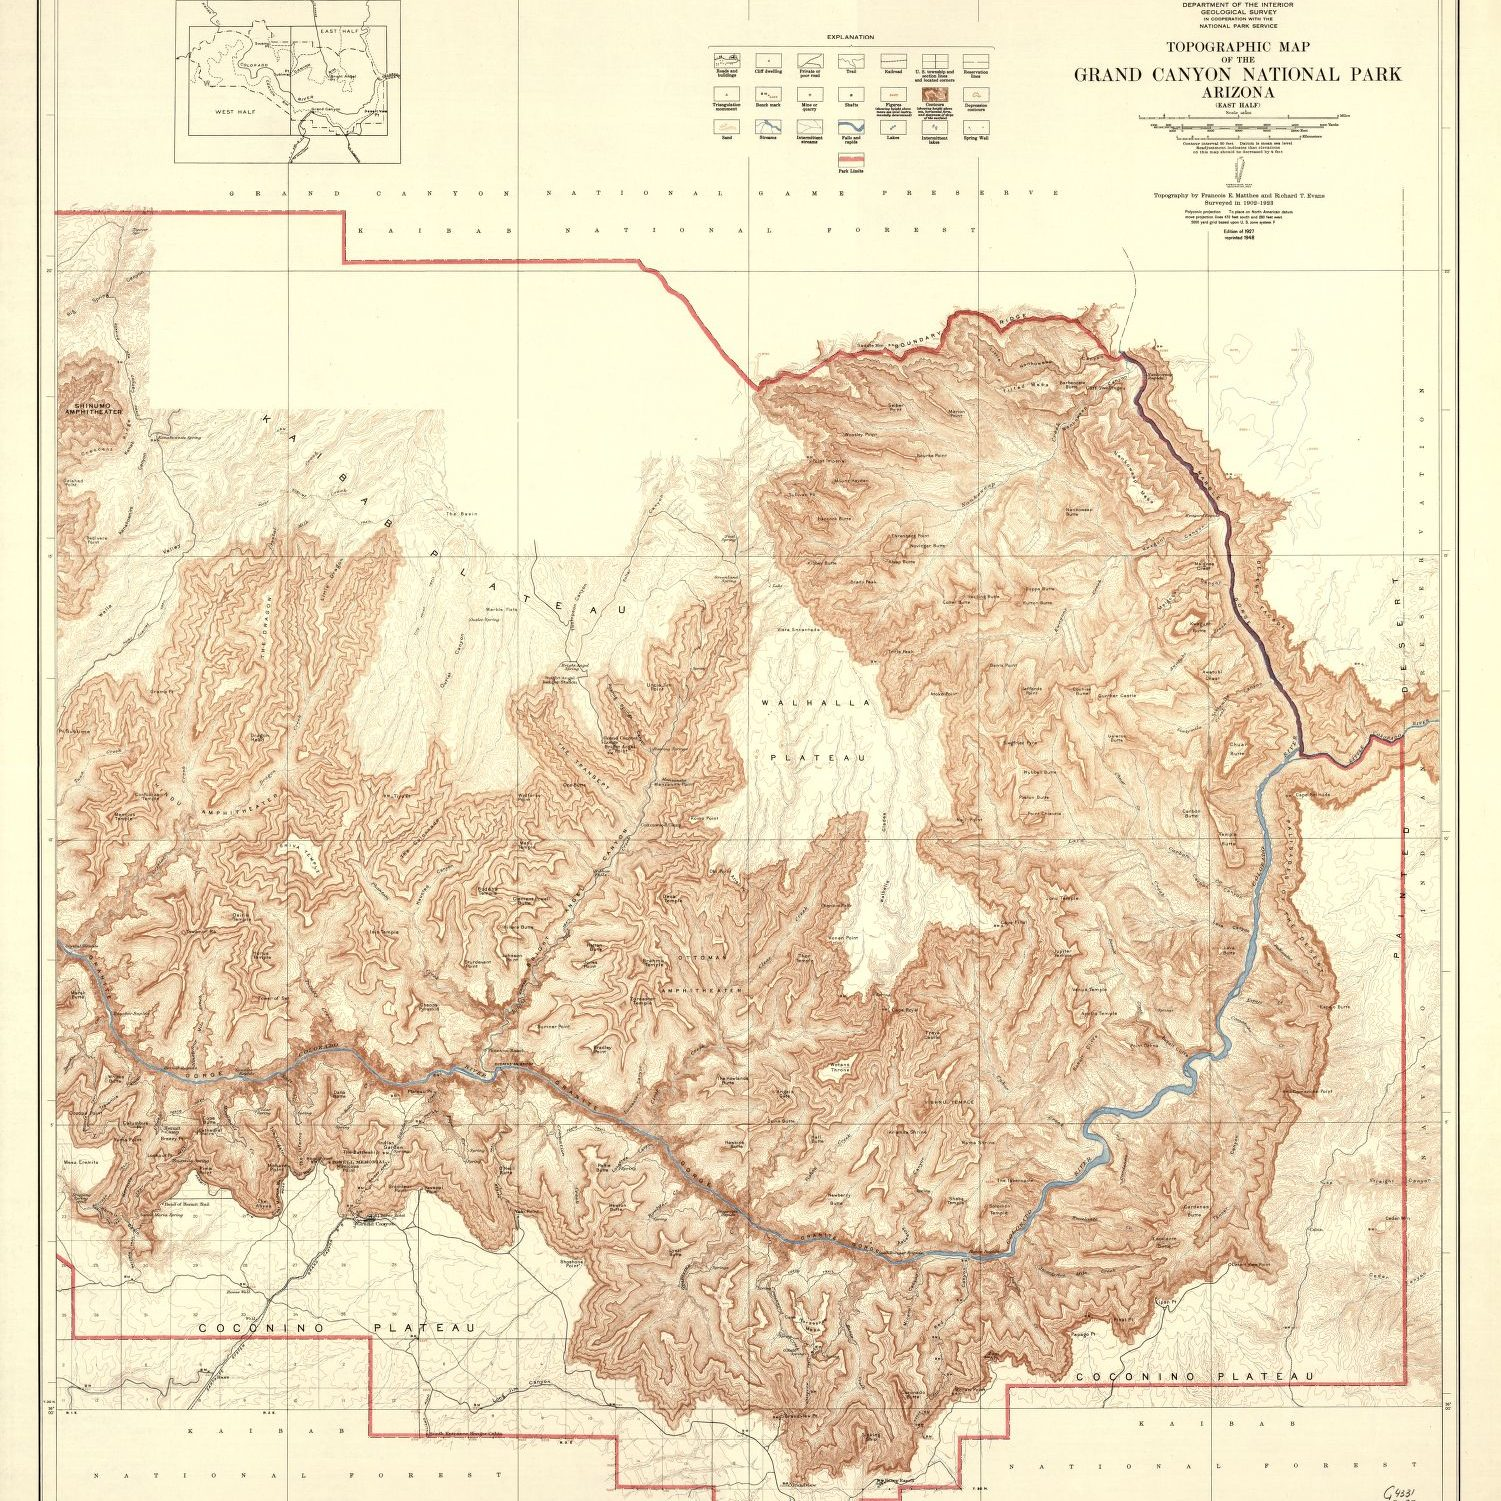 Grand Canyon east topographic map